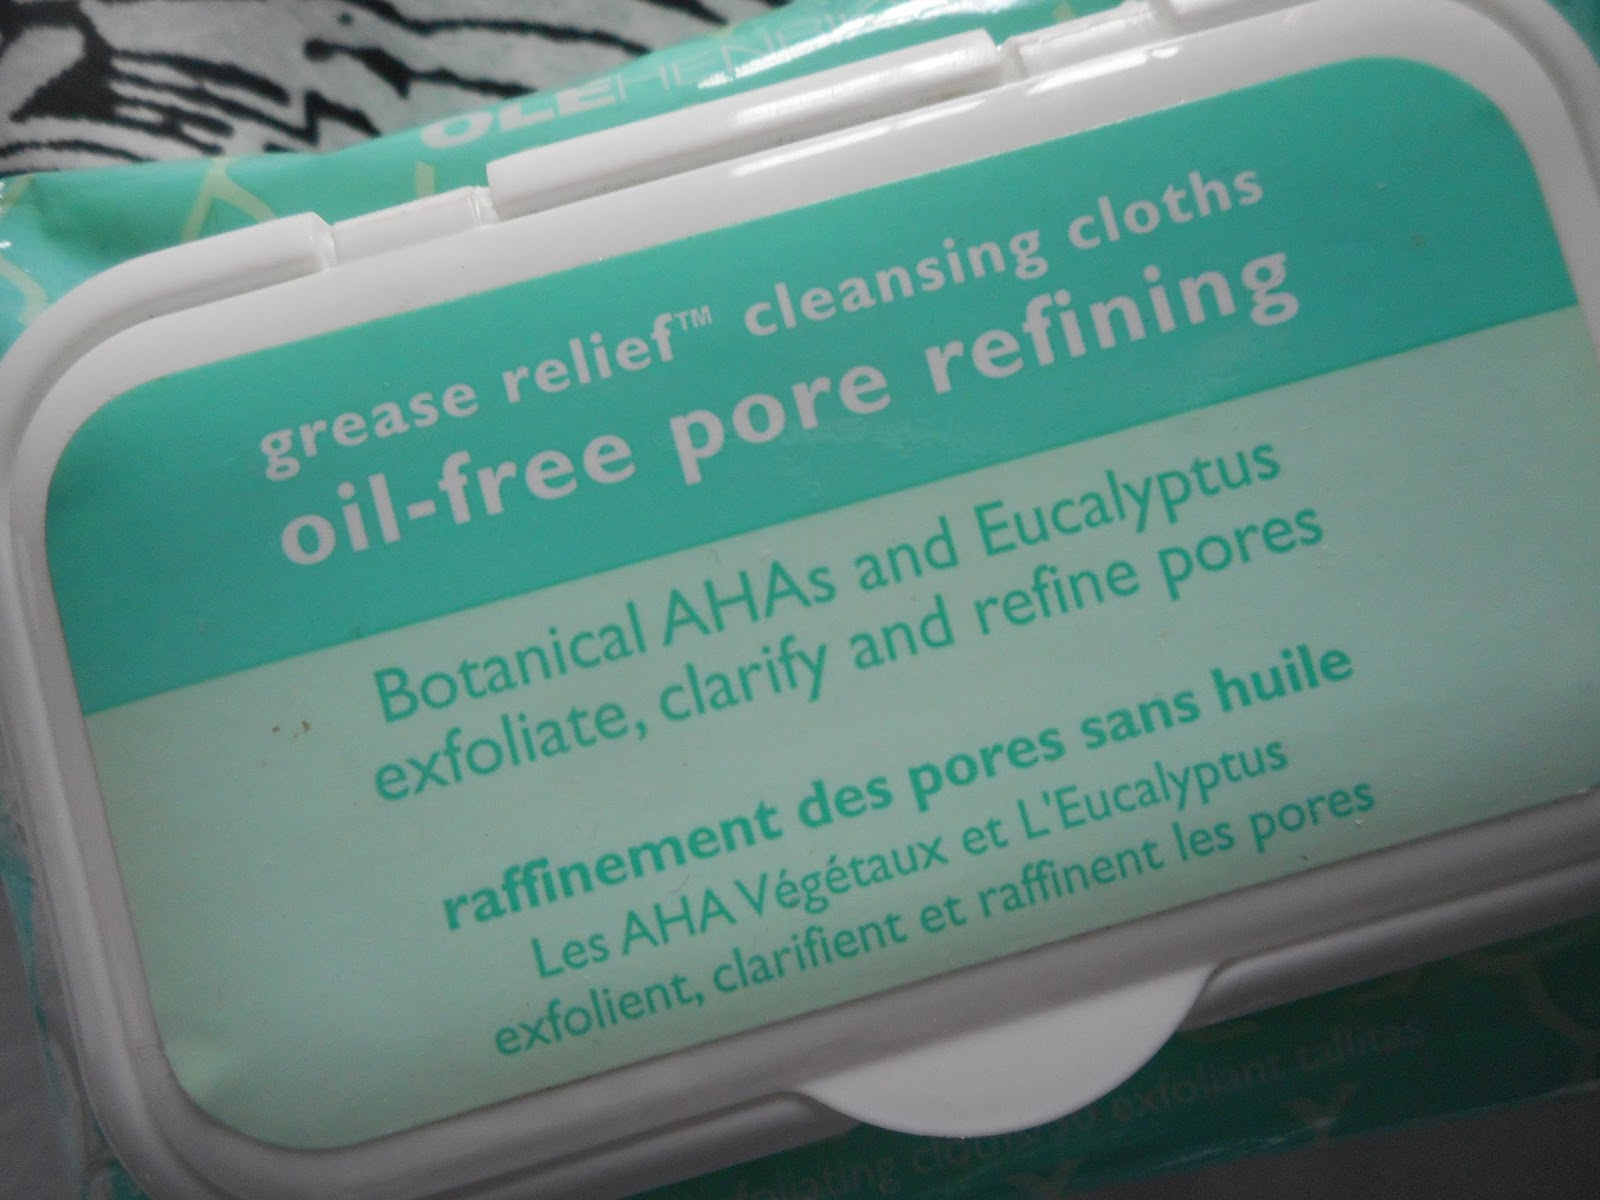 http://sophaarambles.blogspot.co.uk/2016/12/ole-henricksen-grease-relief-cleansing.html